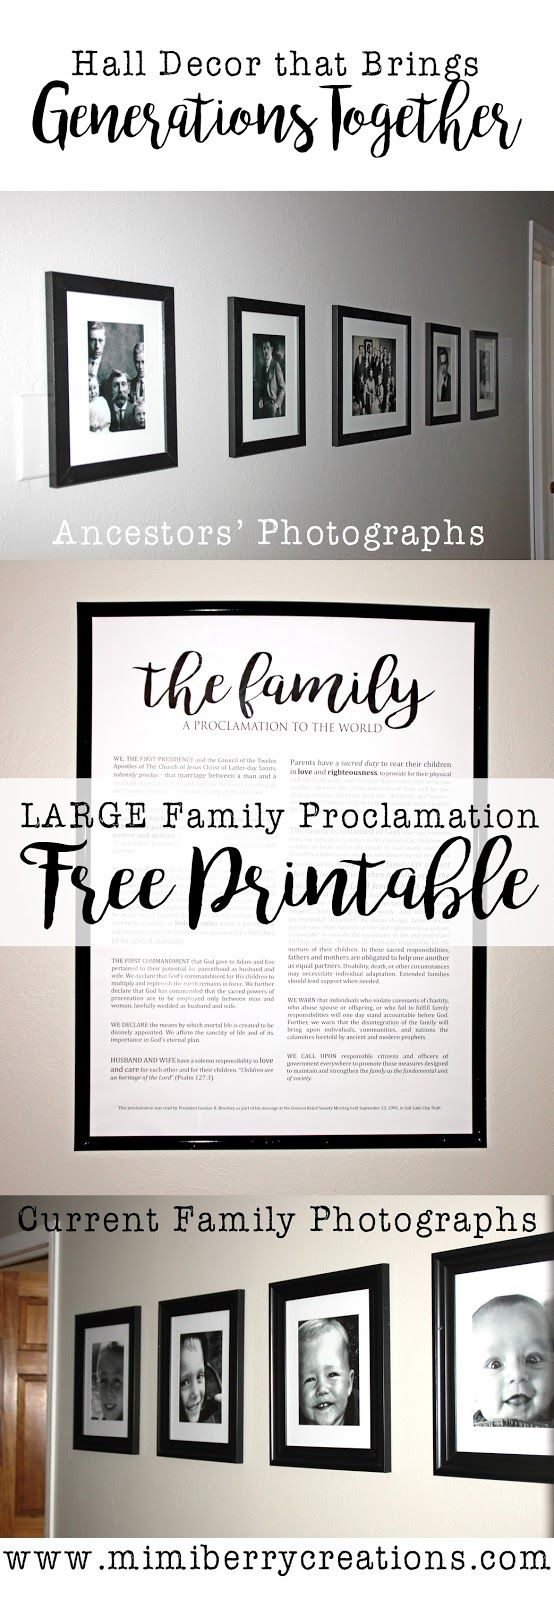 Displaying ancestors' photos, along with current family photos, is a great way to bridge the generations, and create a deeper identity for those living. A great way to finish off a family picture collage is to display the Family Proclamation too. LARGE FREE 'Family: A Proclamation to the World' printable so that you can DIY! #familyproclamation #gallerywall #geneology #halldecor #walldecor #freewallart